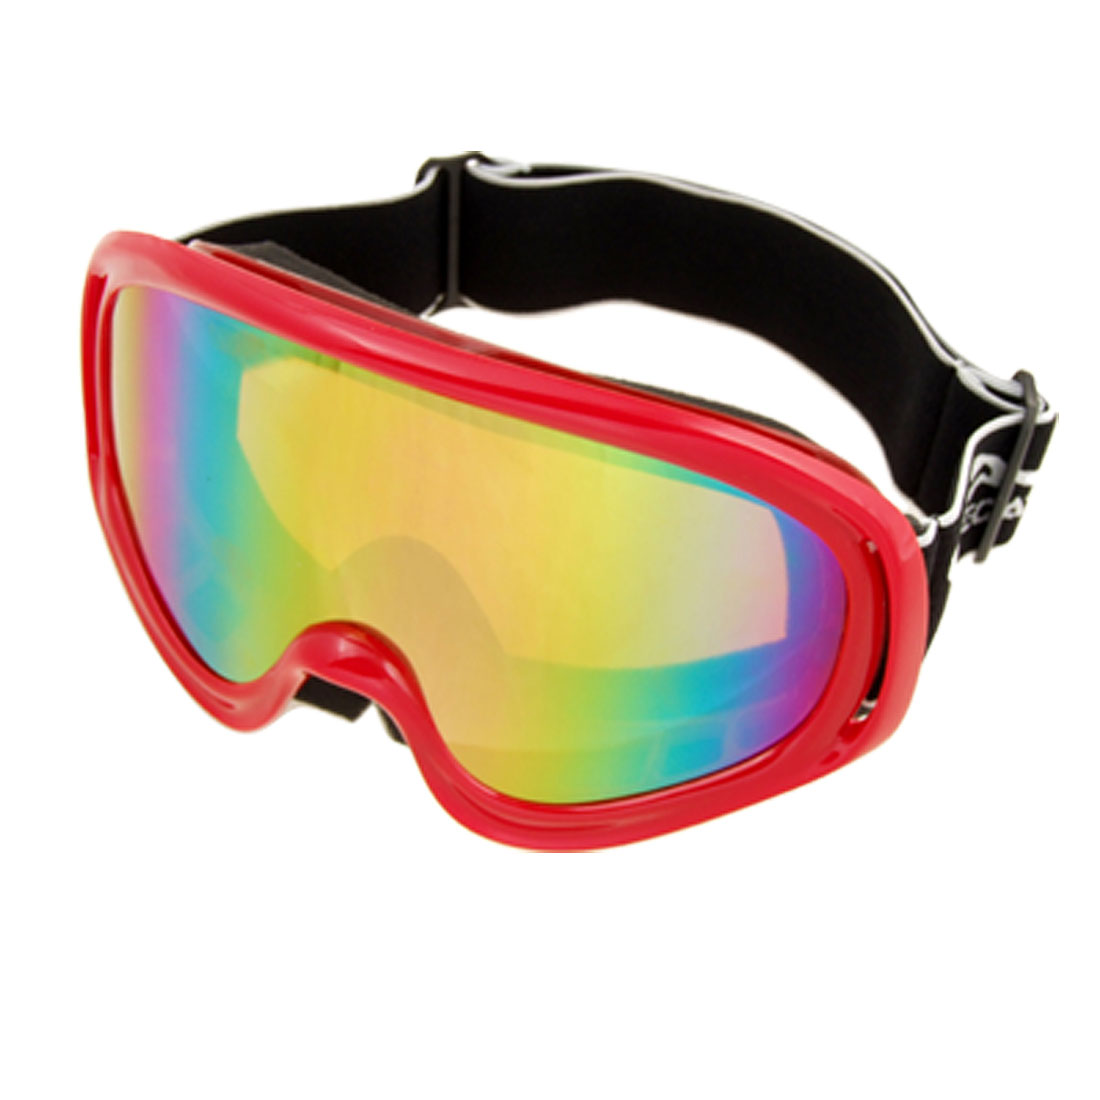 Fashion Ski Snowboard Sports Glasses Goggles Color Coated Lens Red Frame